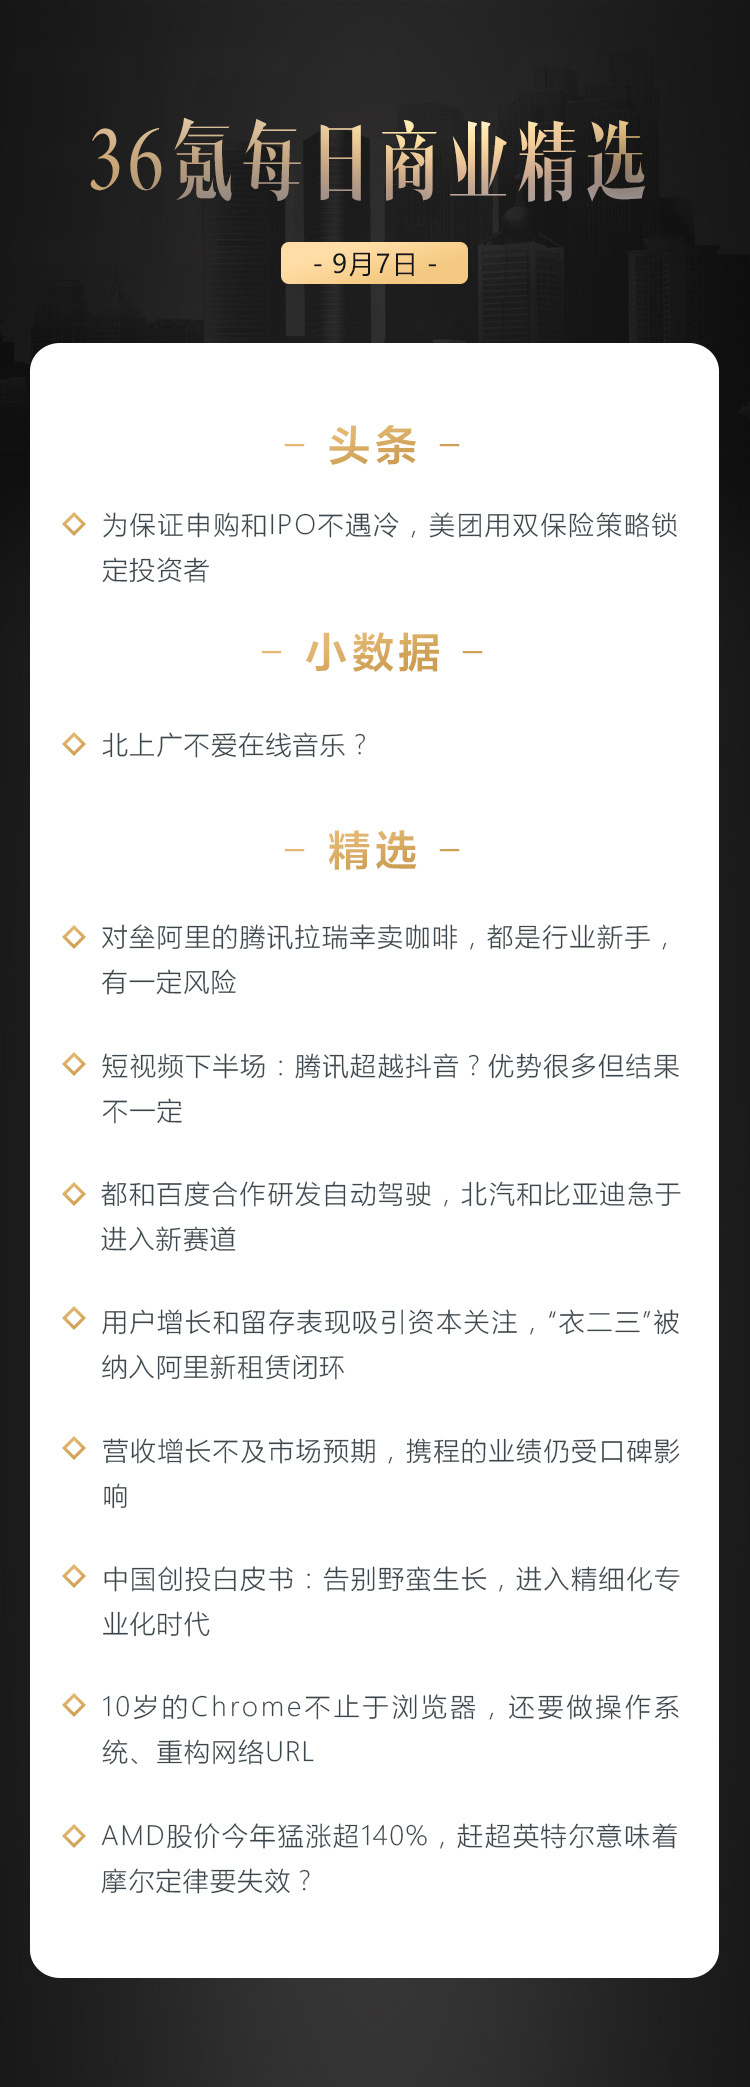 Depth information | encounter cold, purchase and IPO in order to ensure Meituan lock with double insurance strategy investors